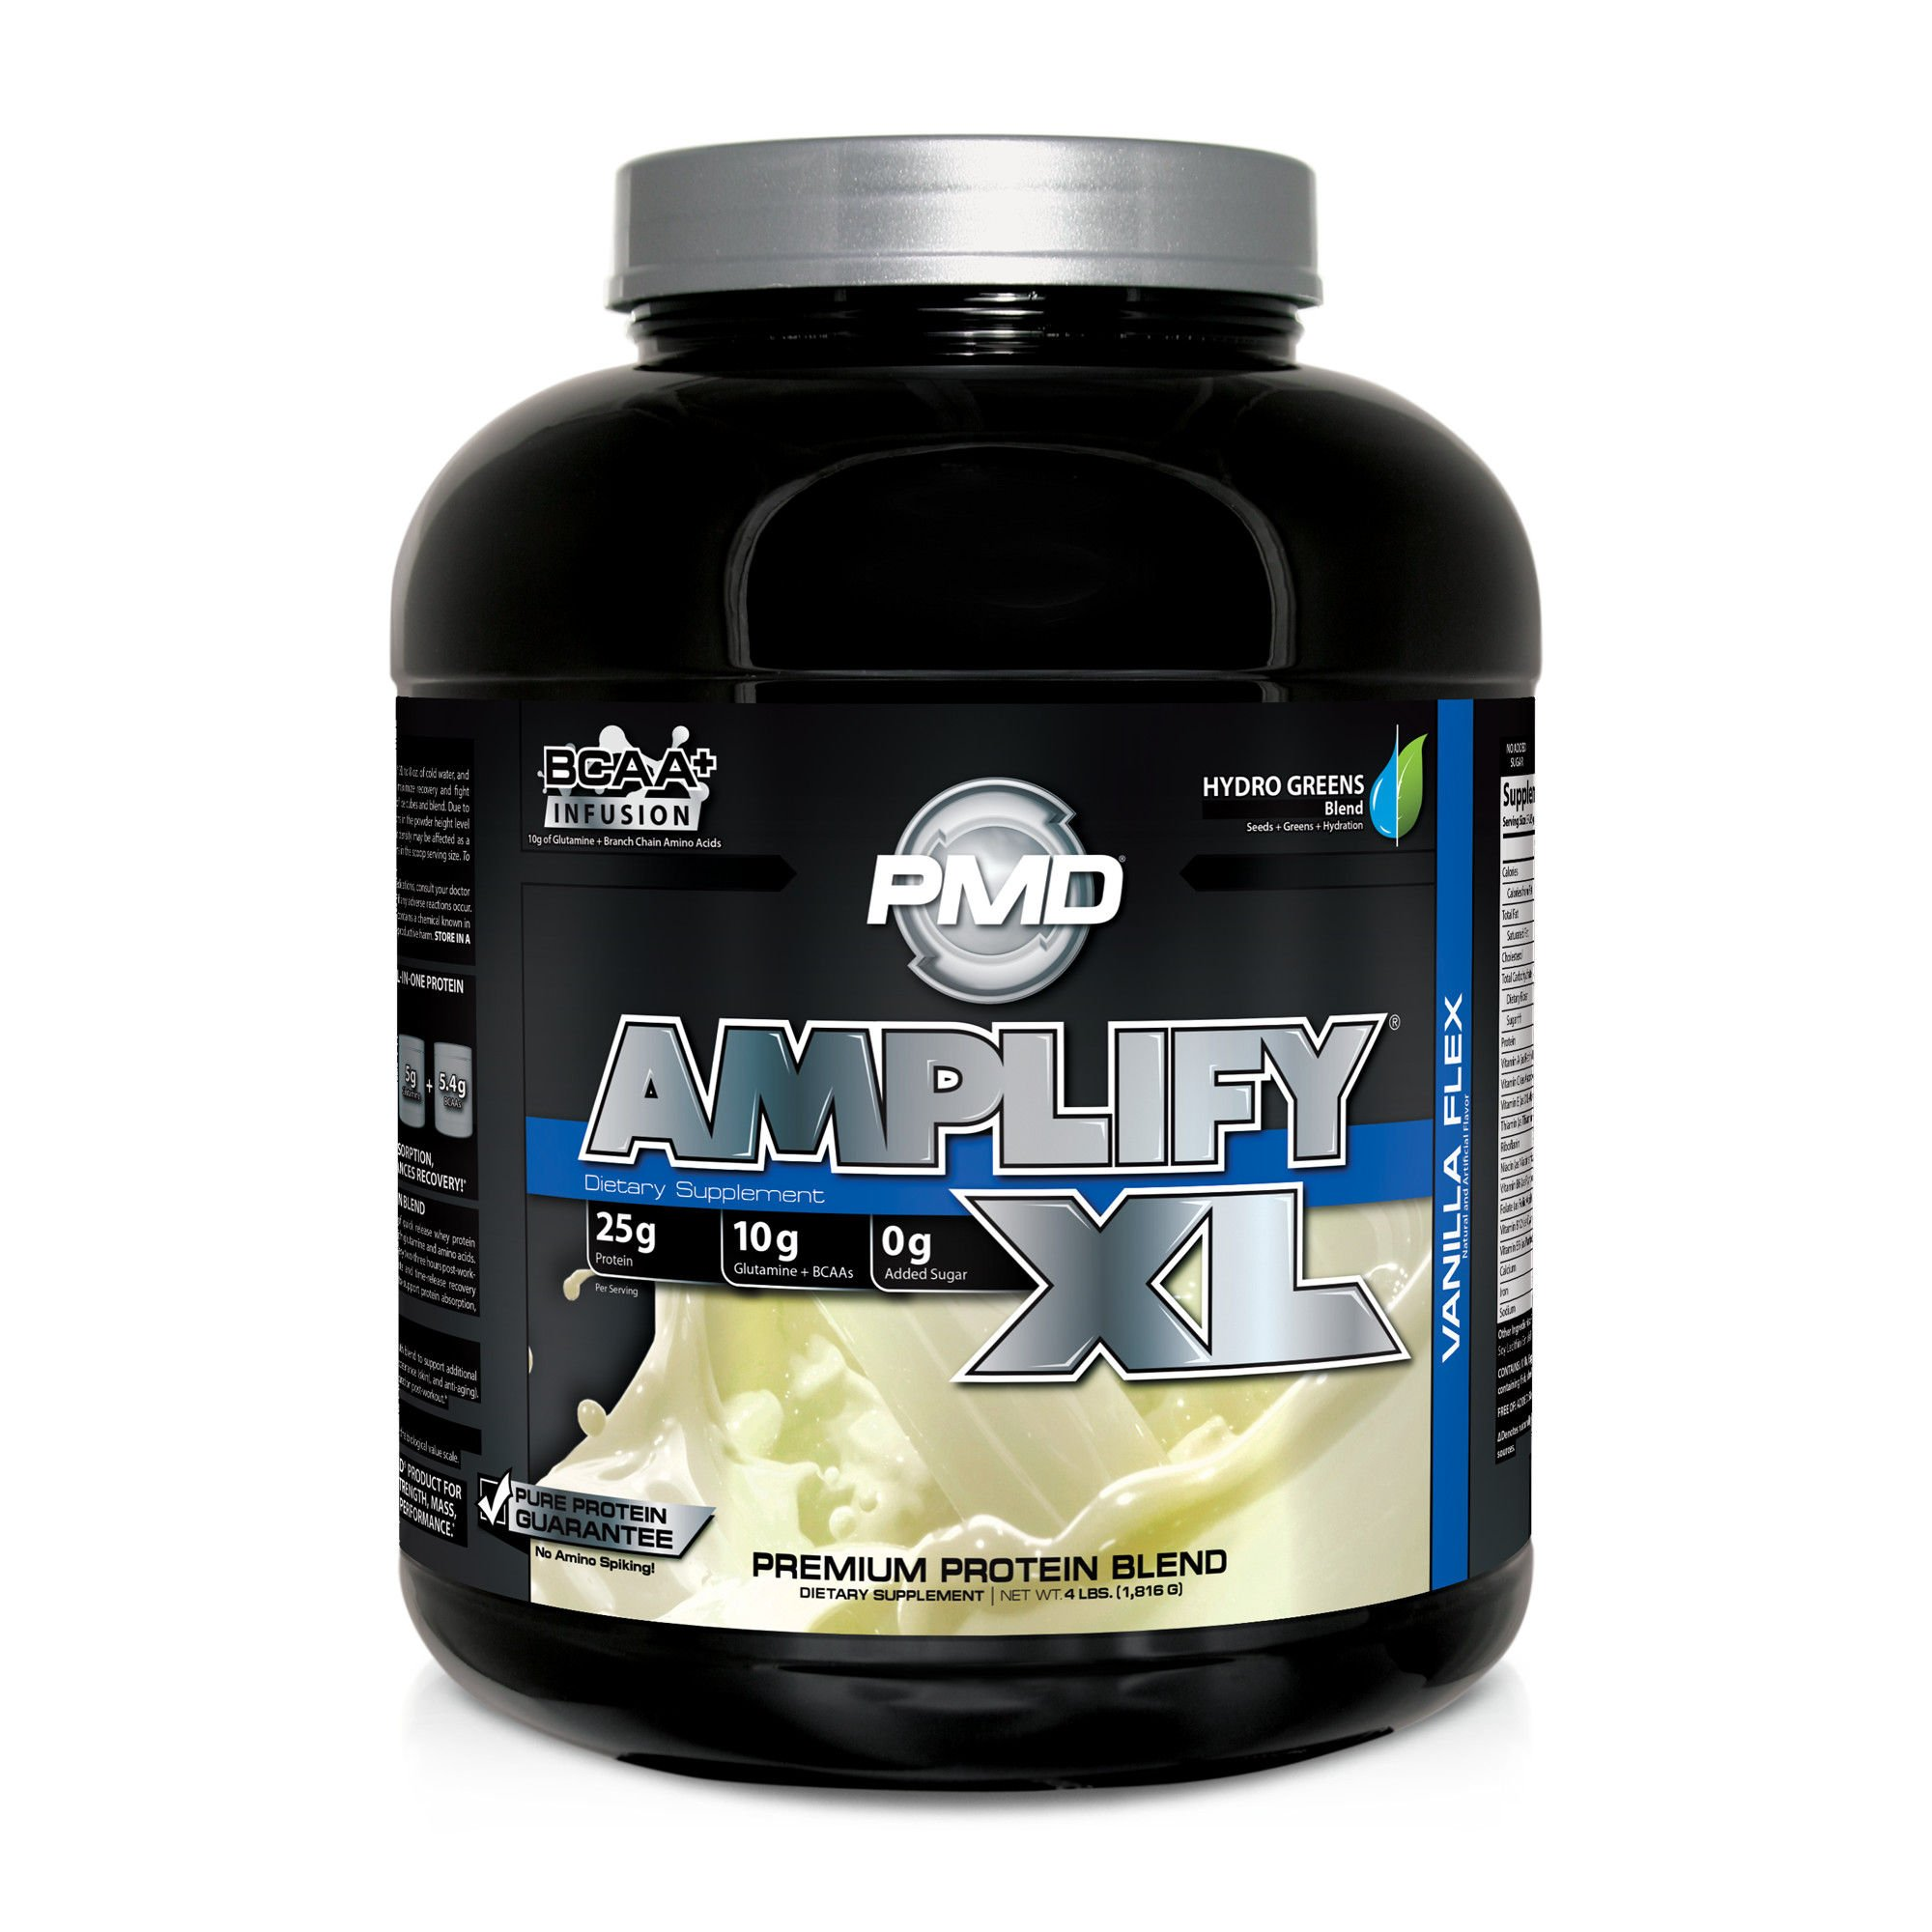 PMD Sports Amplify XL Superior Protein Supplement - Glutamine and Whey Protein Matrix with Superfood for Muscle, Strength and Recovery - Vanilla Flex - 48 Servings